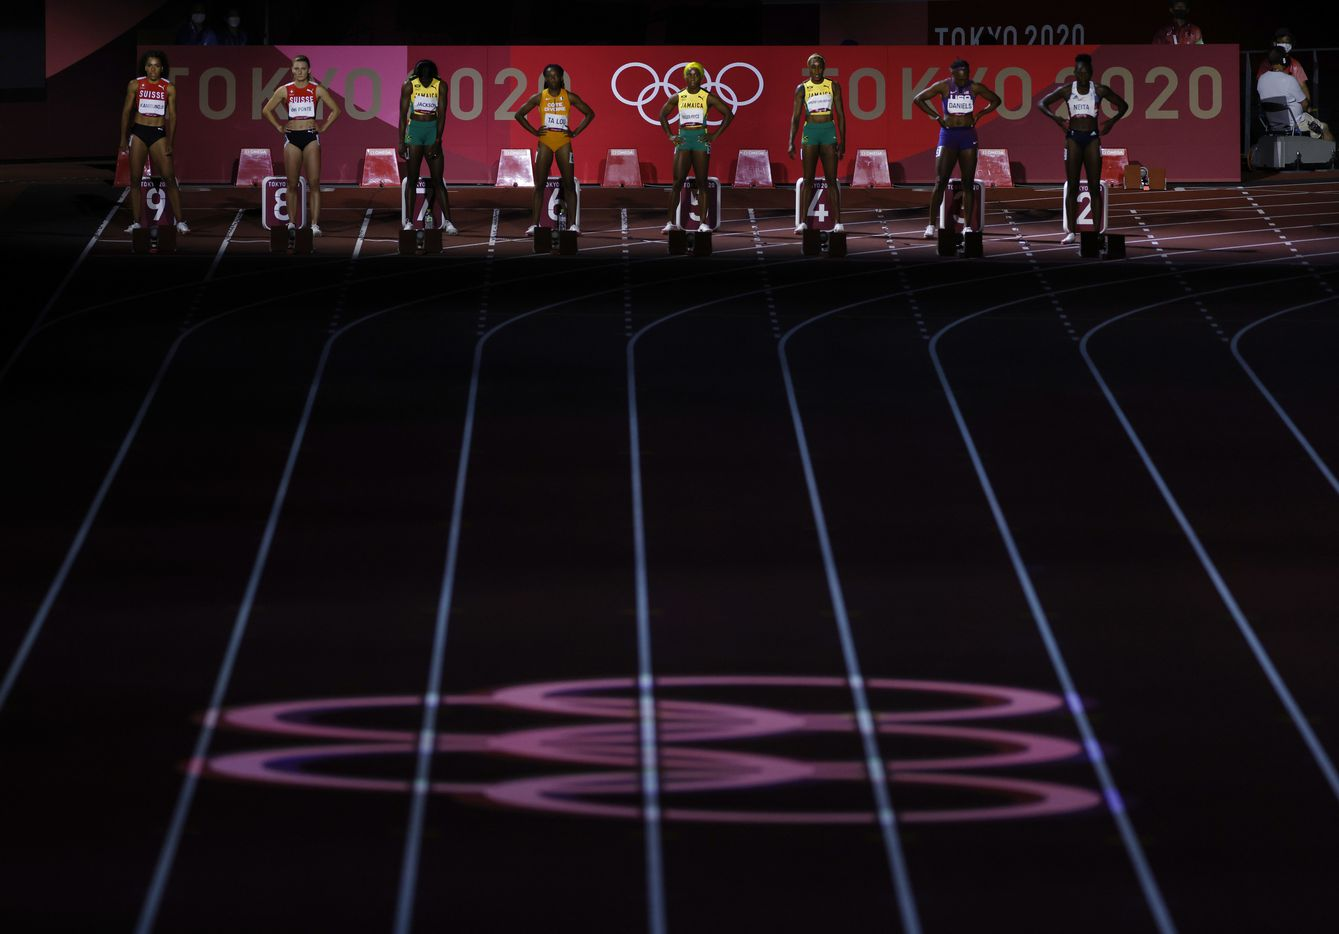 Light display during the introductions for the women's 100 meter final race during the postponed 2020 Tokyo Olympics at Olympic Stadium, on Saturday, July 31, 2021, in Tokyo, Japan. Jamaica's Elaine Thompson-Herah earned a gold medal in the race.  (Vernon Bryant/The Dallas Morning News)